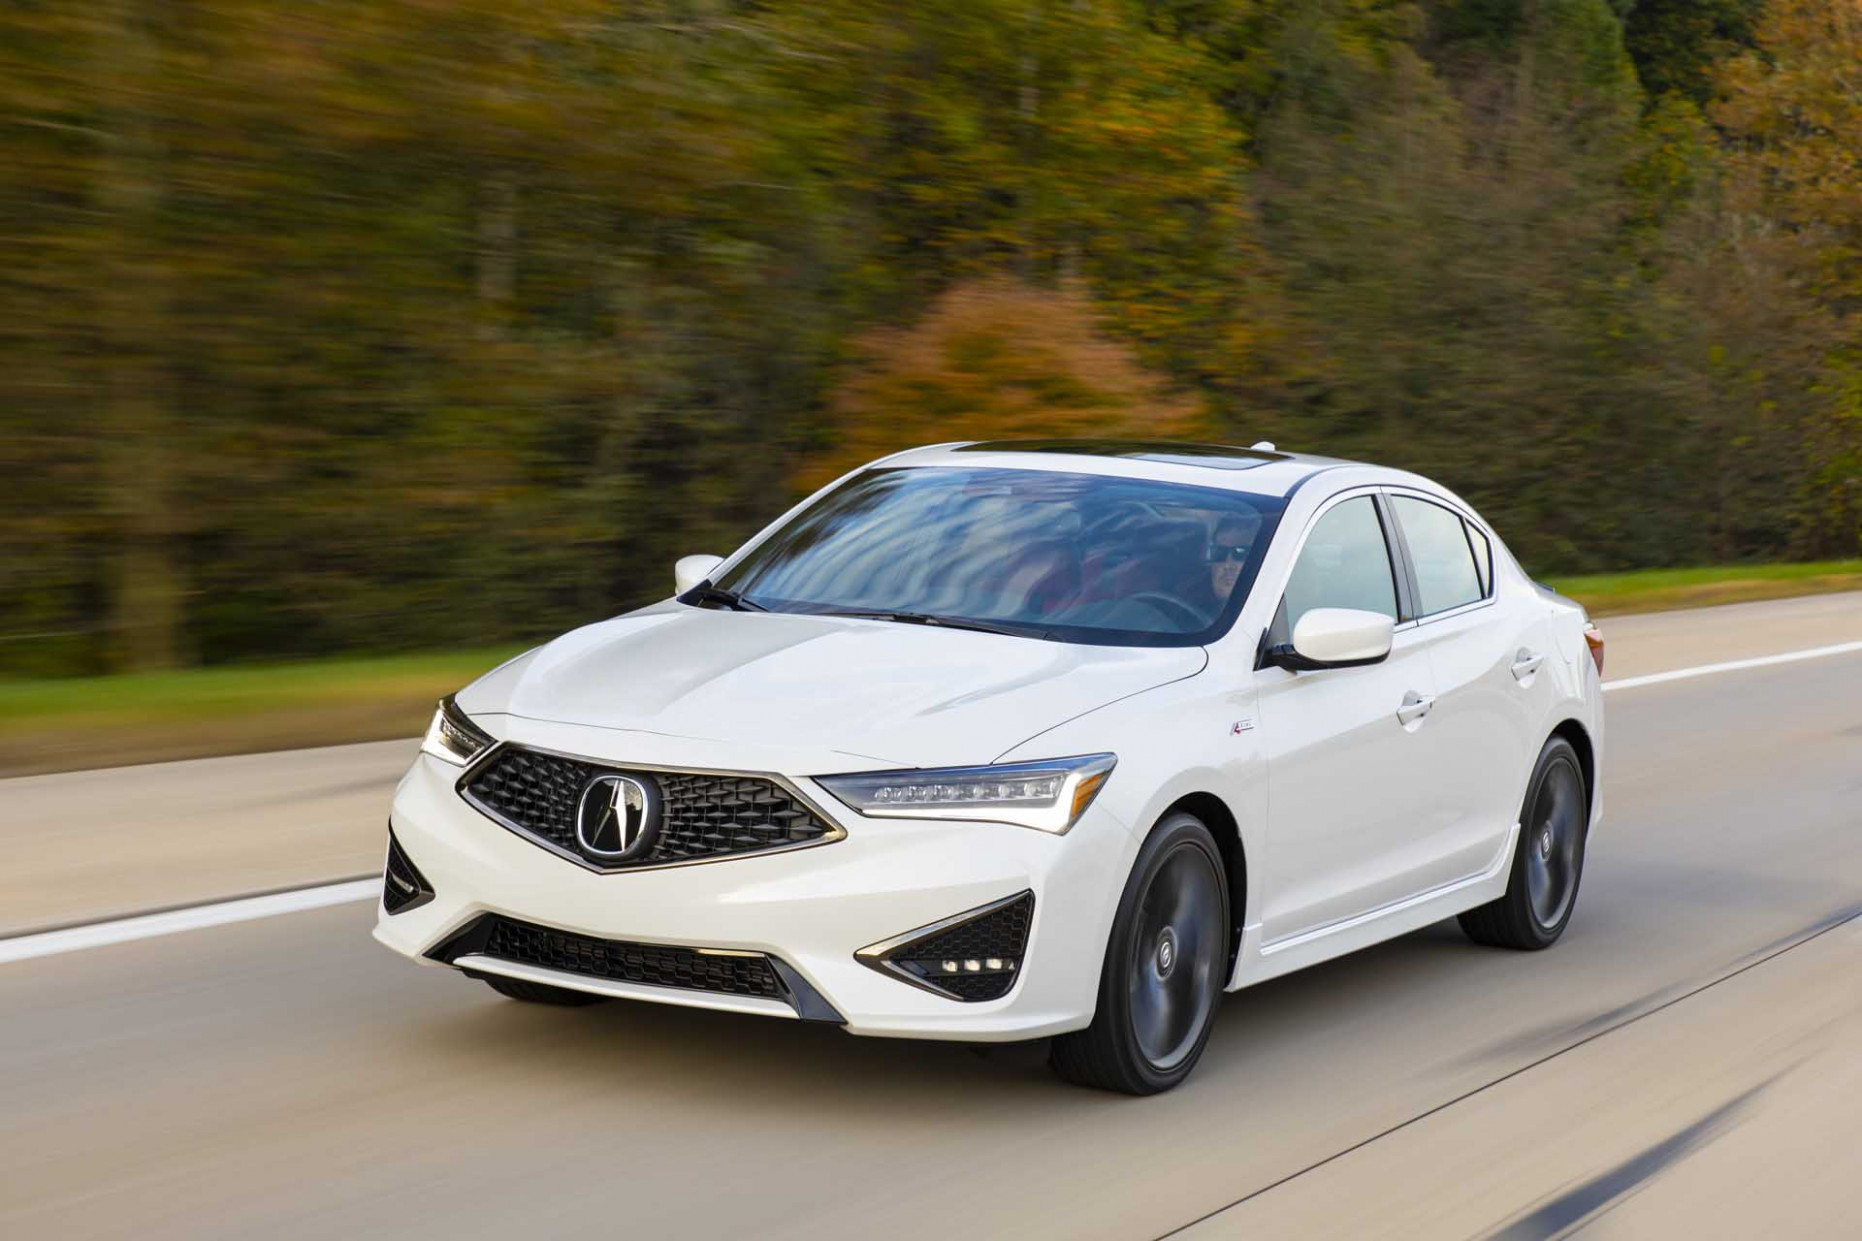 8 Acura ILX Review, Ratings, Specs, Prices, and Photos - The ..